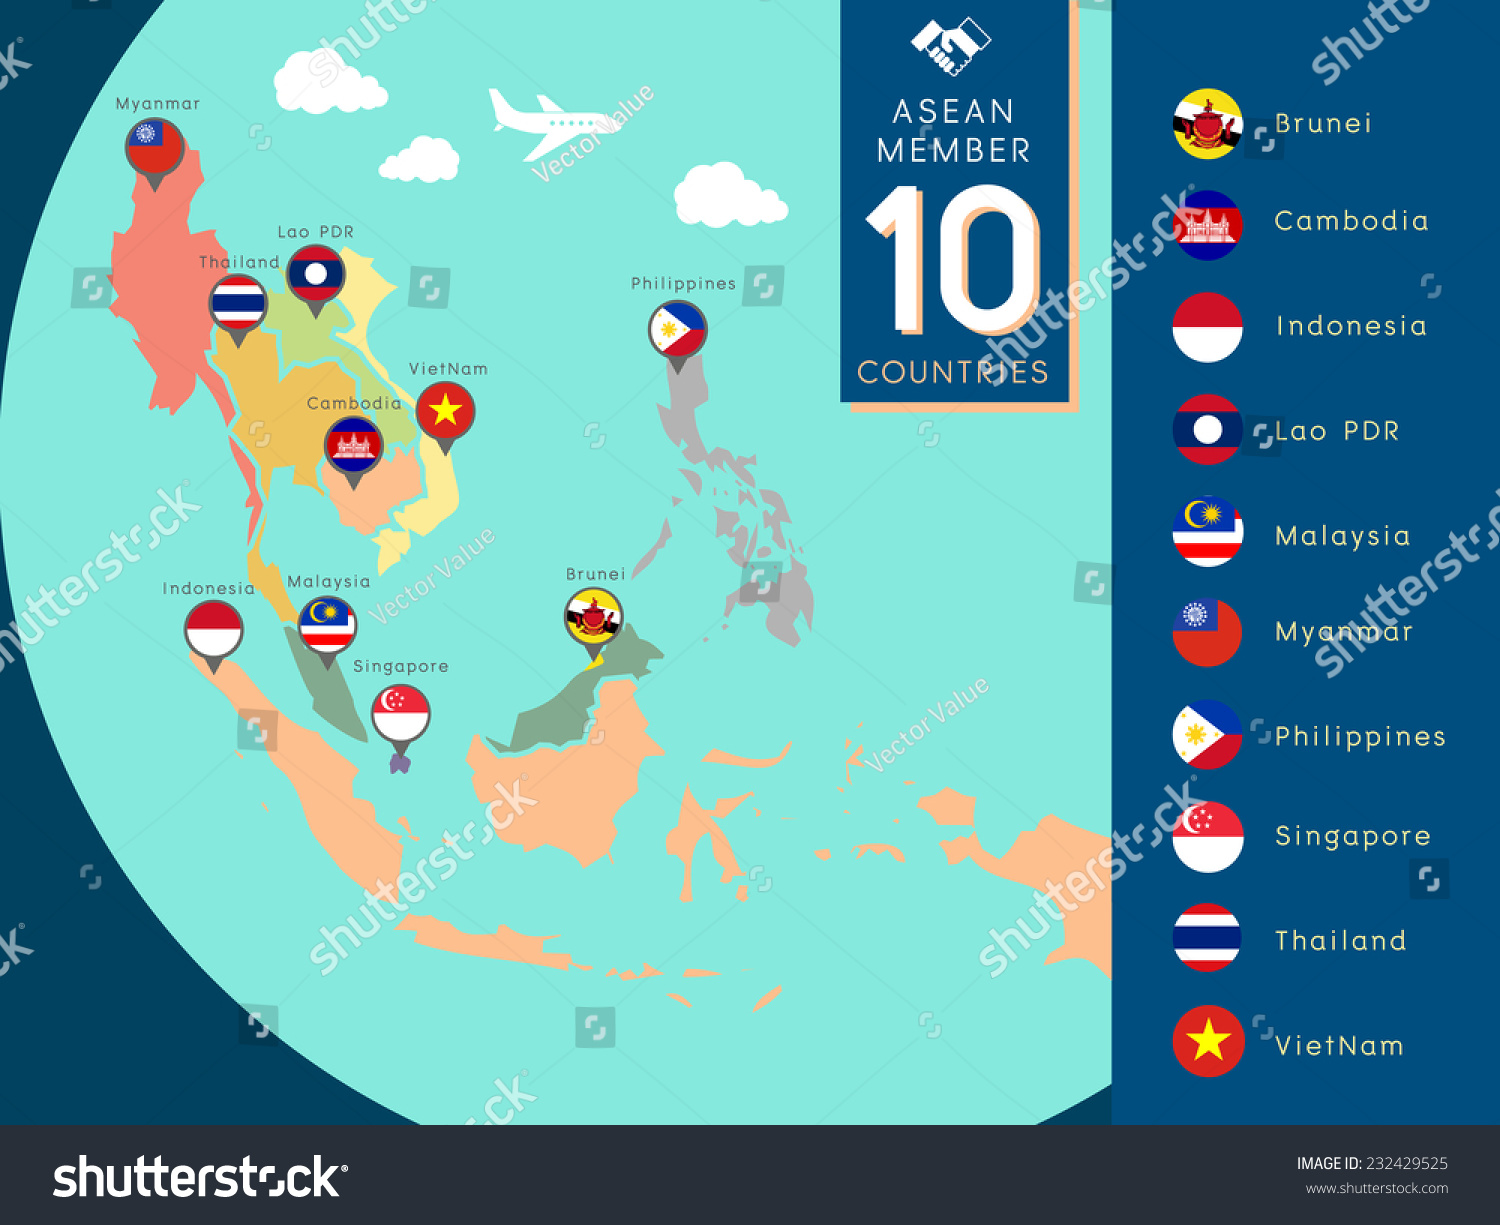 Aec asean economic community world map stock vector royalty free aec asean economic community world map illustration with country flag gumiabroncs Images